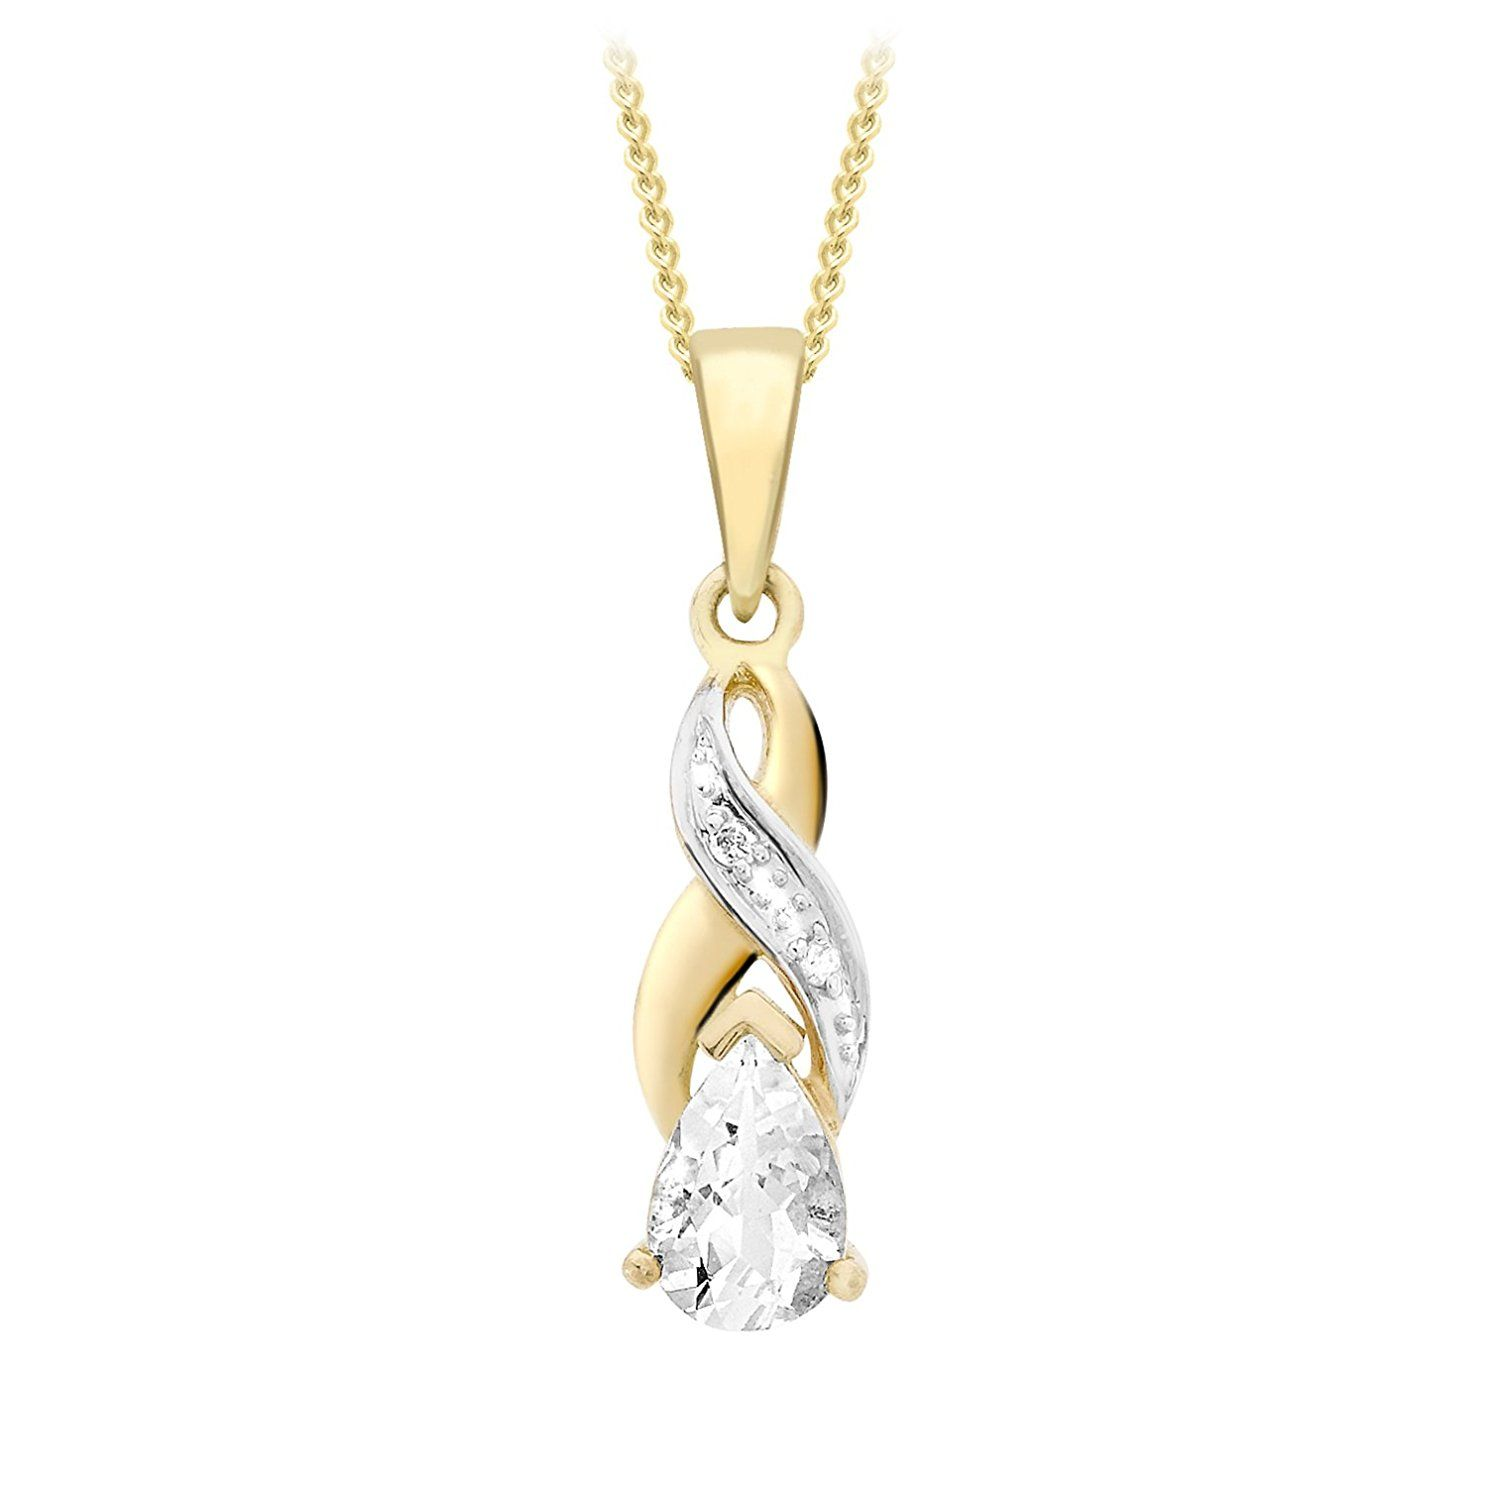 Carissima Gold 9 ct Yellow Gold Diamond Butterfly Pendant on Chain Necklace of 46 cm/18 inch